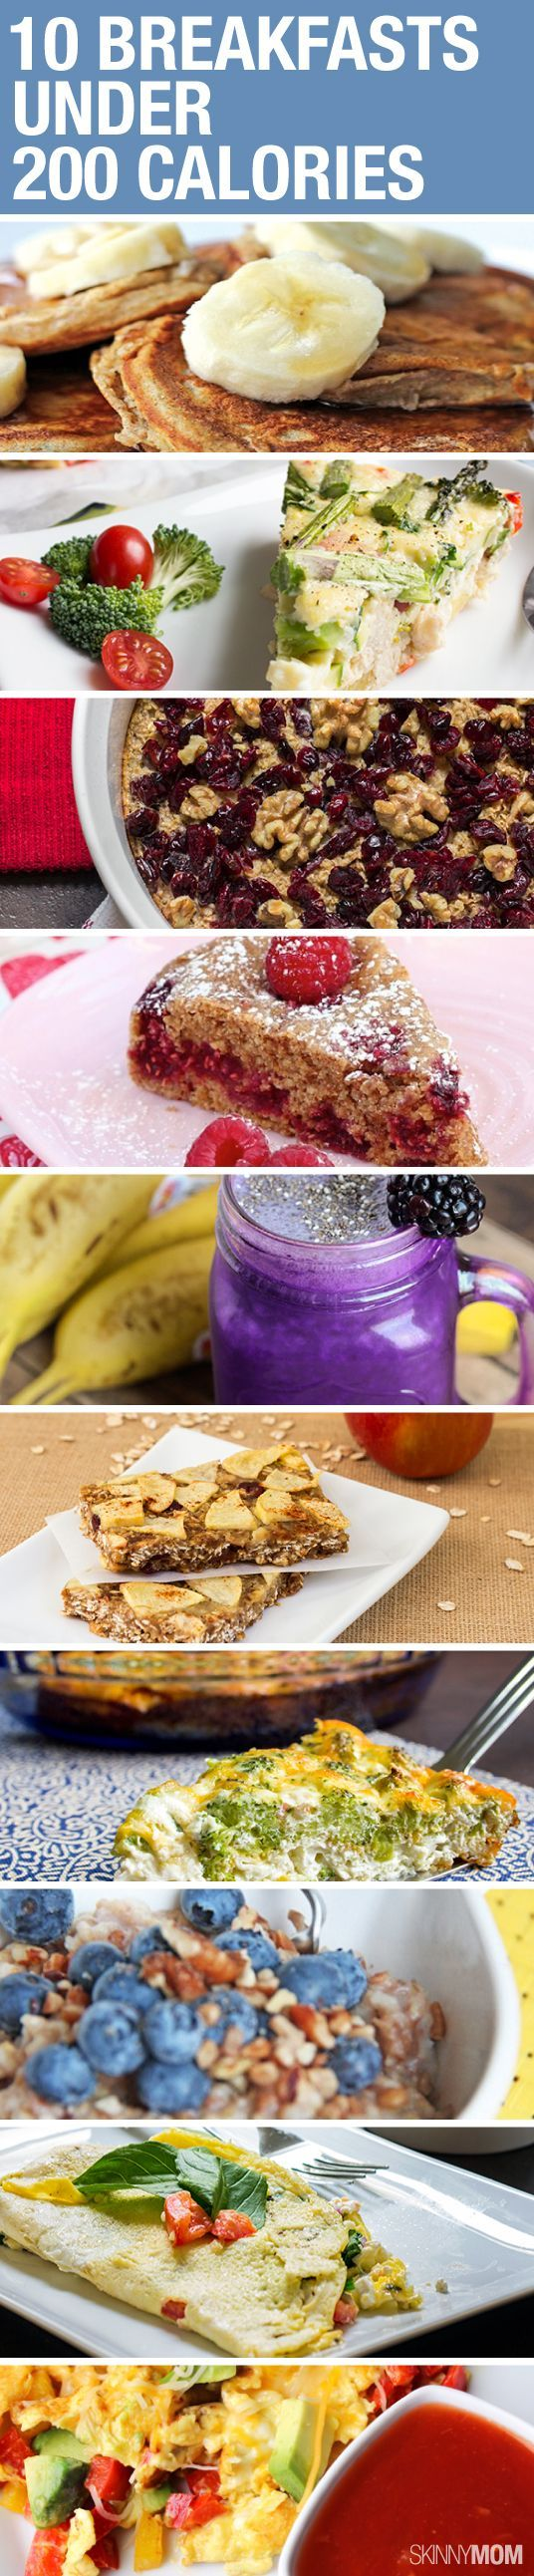 10 Mouth Watering Breakfasts Under 250 Calories